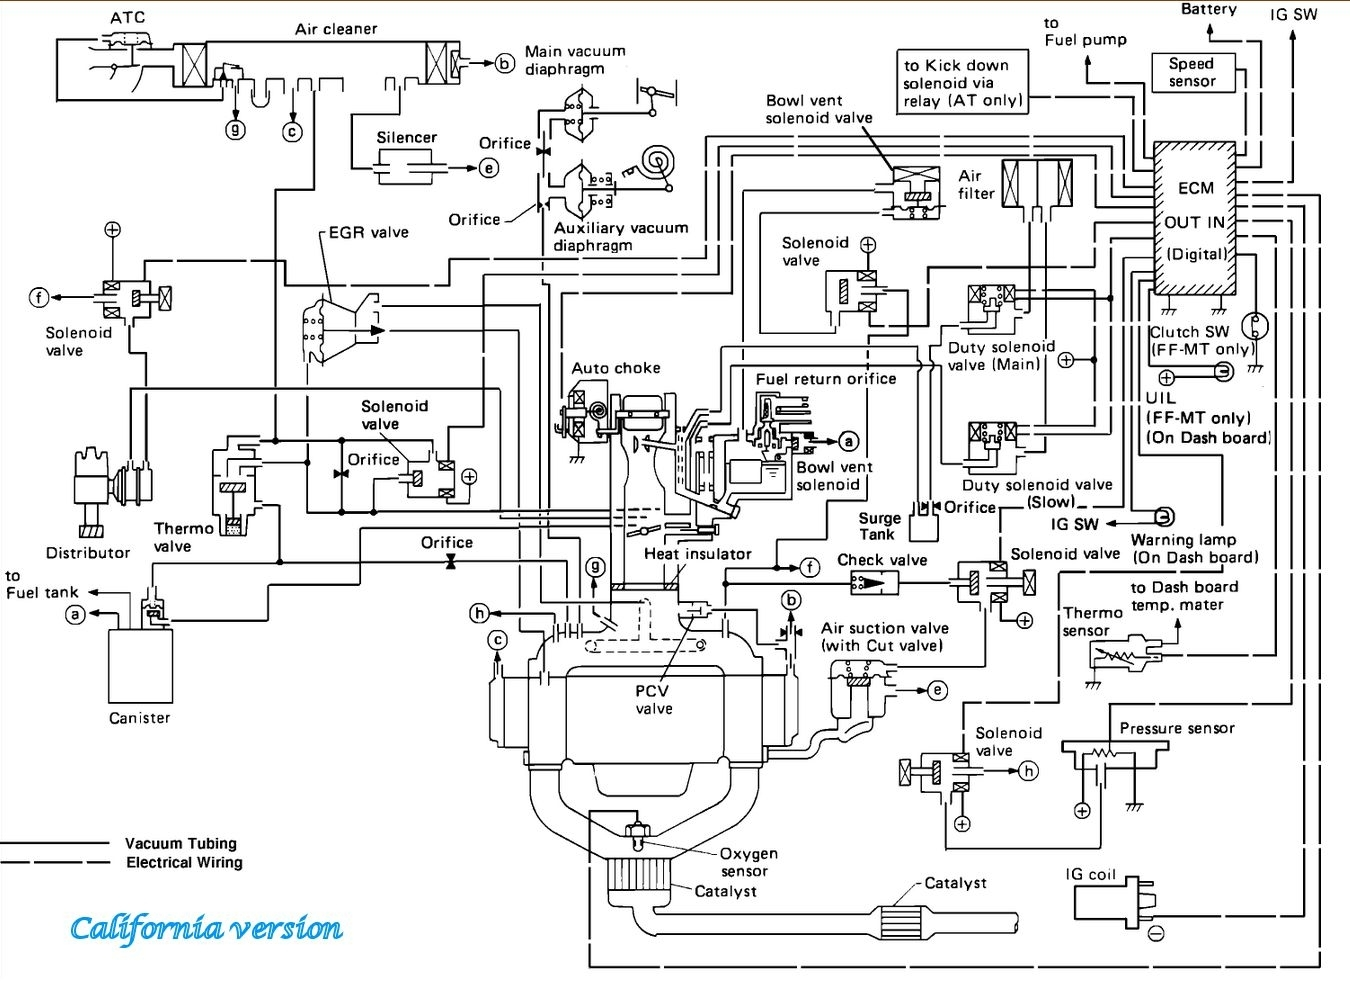 Vacuum Hose Diagram I Have The Car Listed Above And I Got